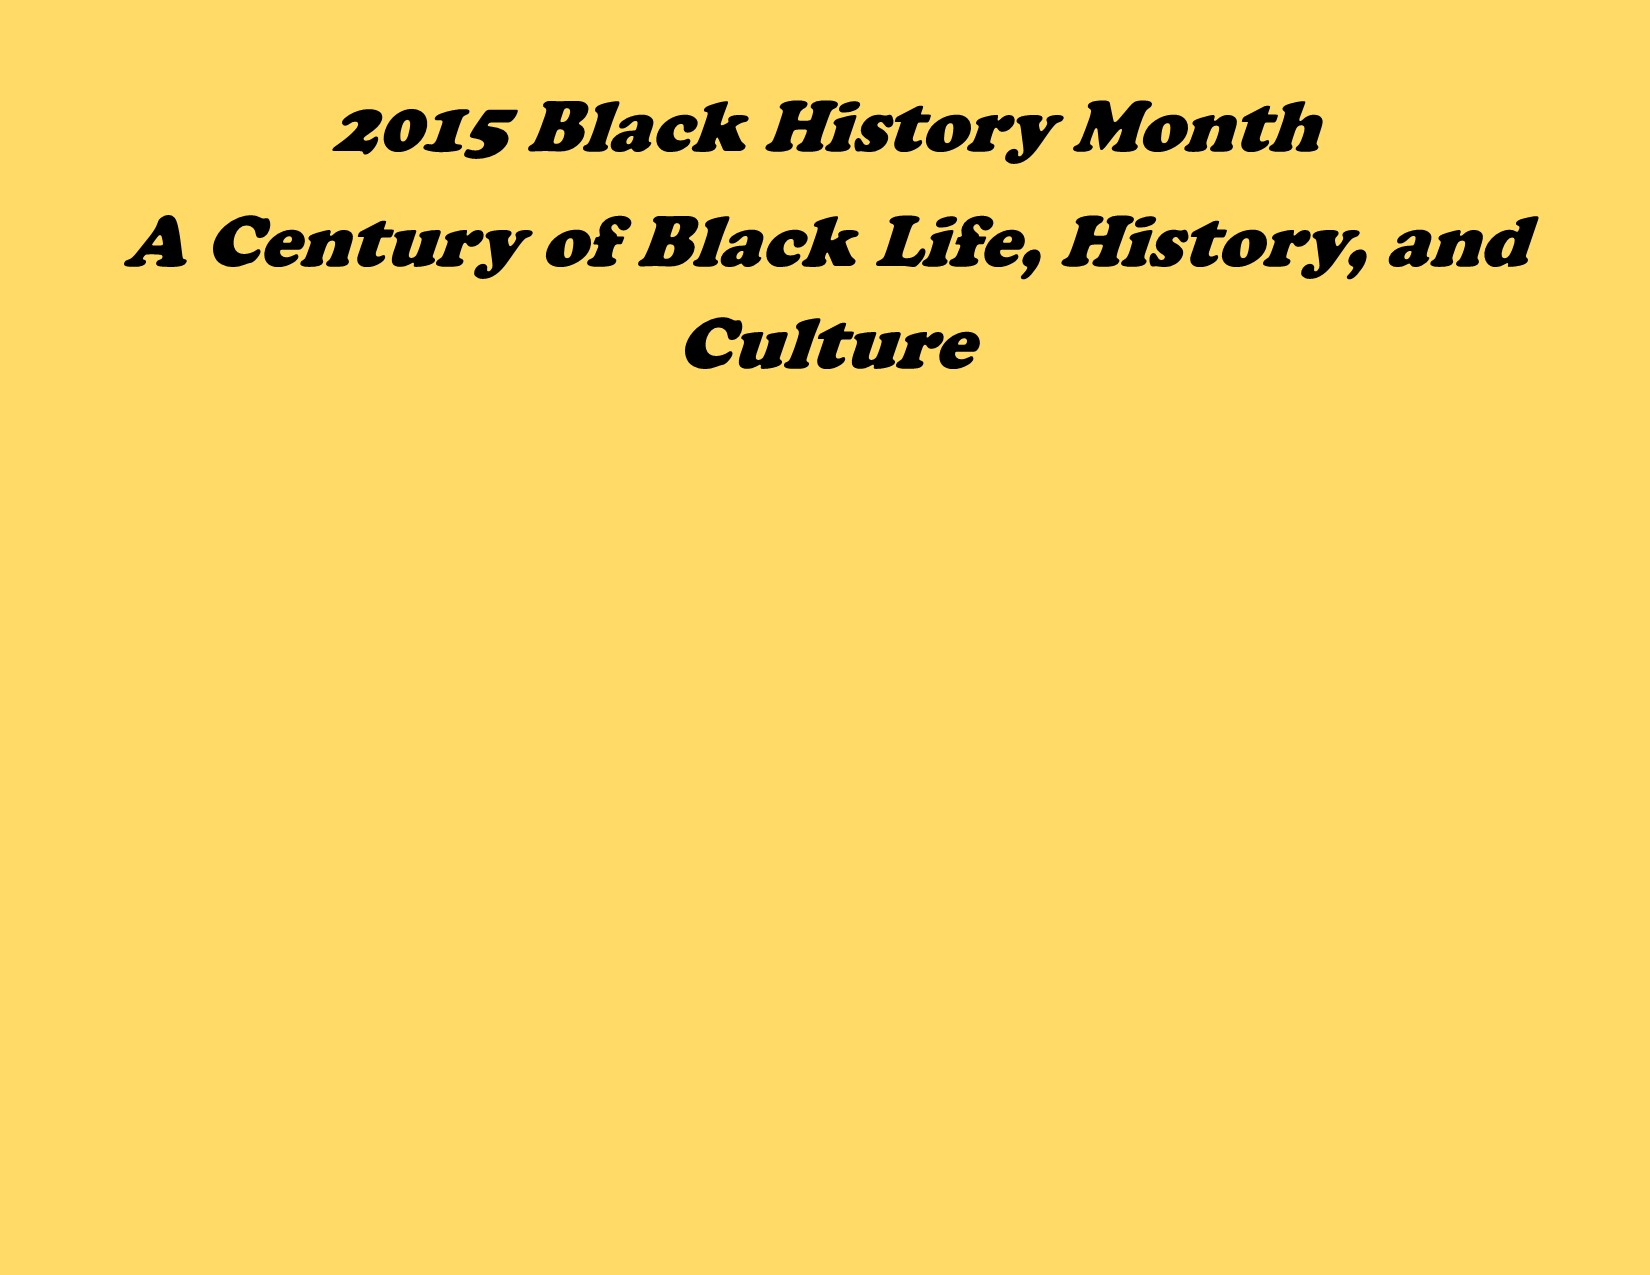 Image: Black History Month